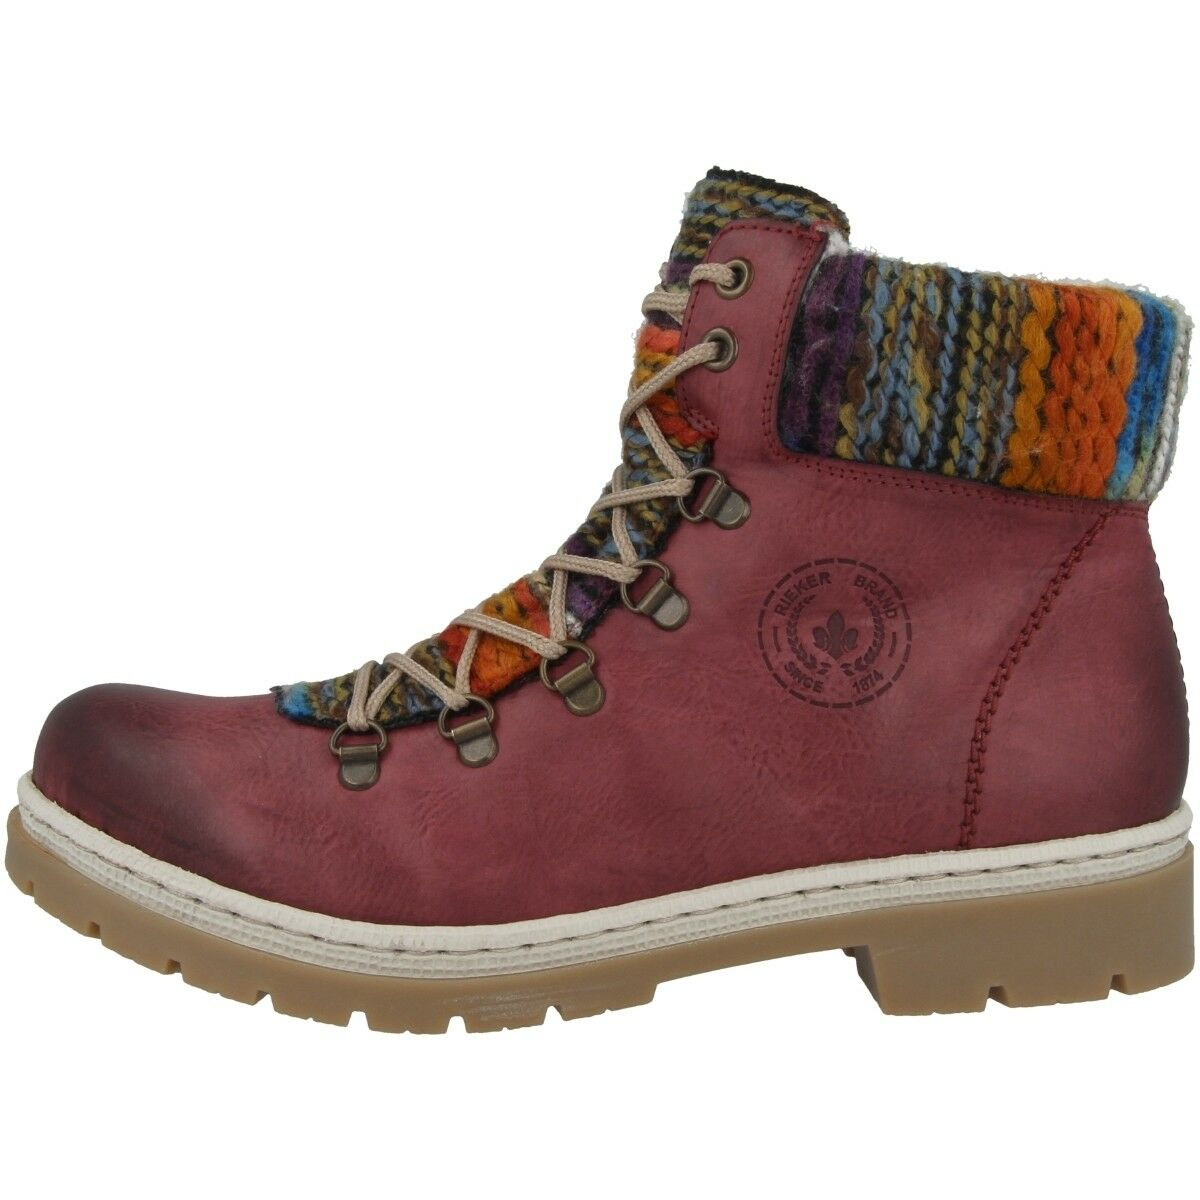 Rieker Eagle-Poncho shoes Women's Boots Ankle Boot Boots Red orange Y9432-35